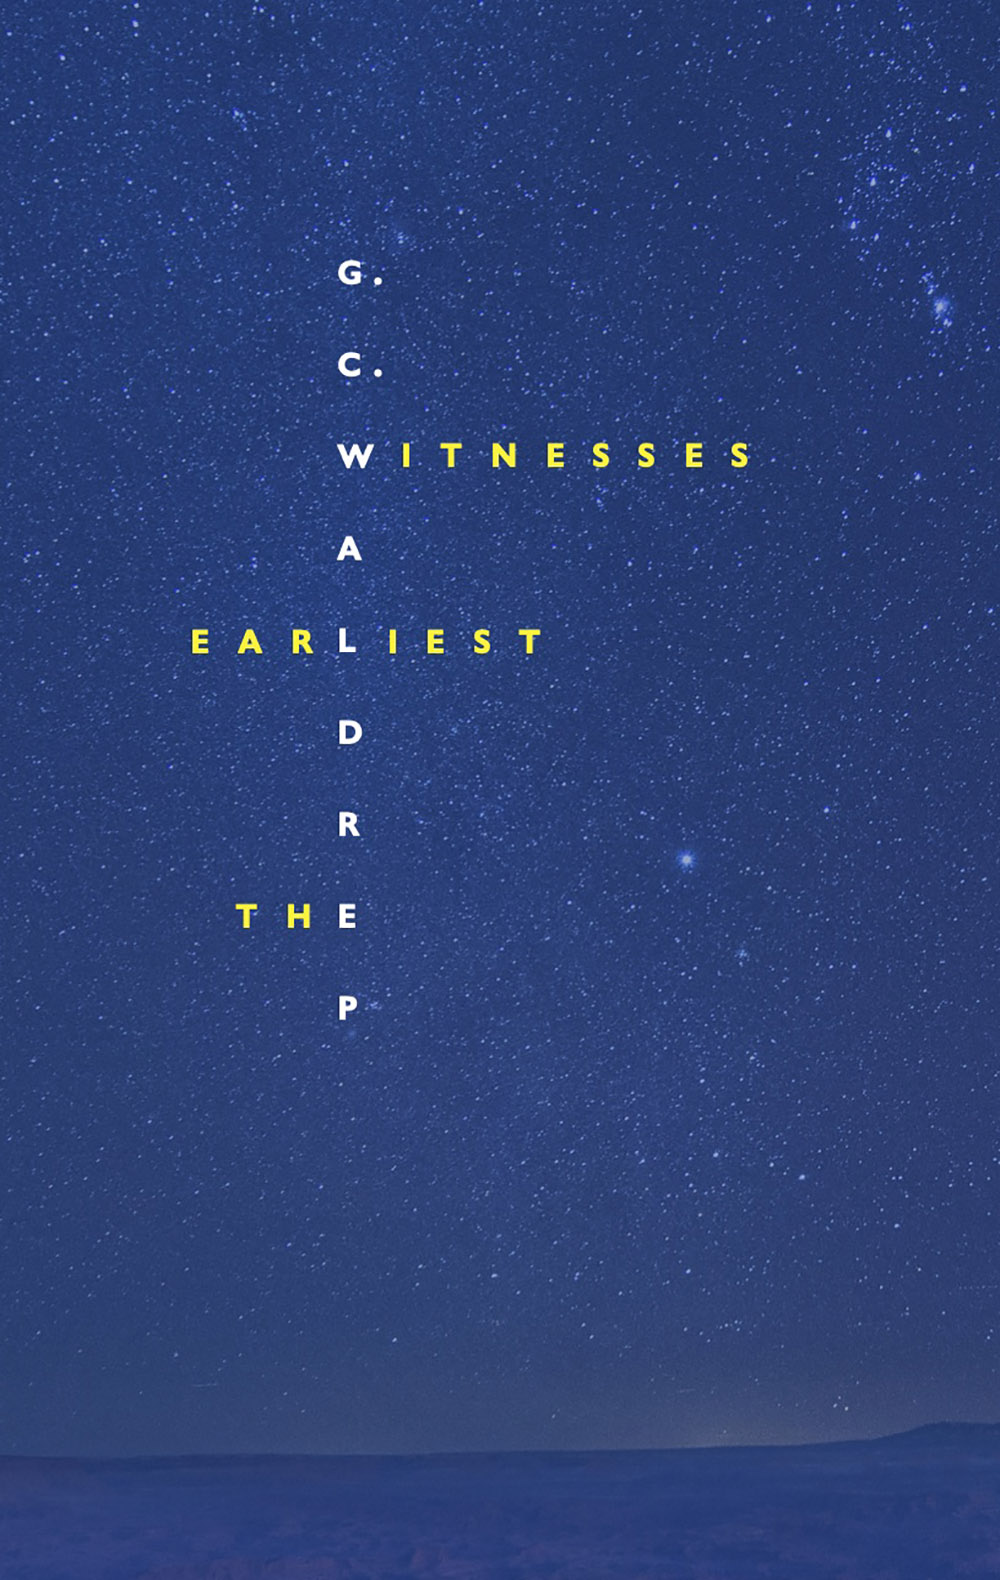 The Earliest Witnesses